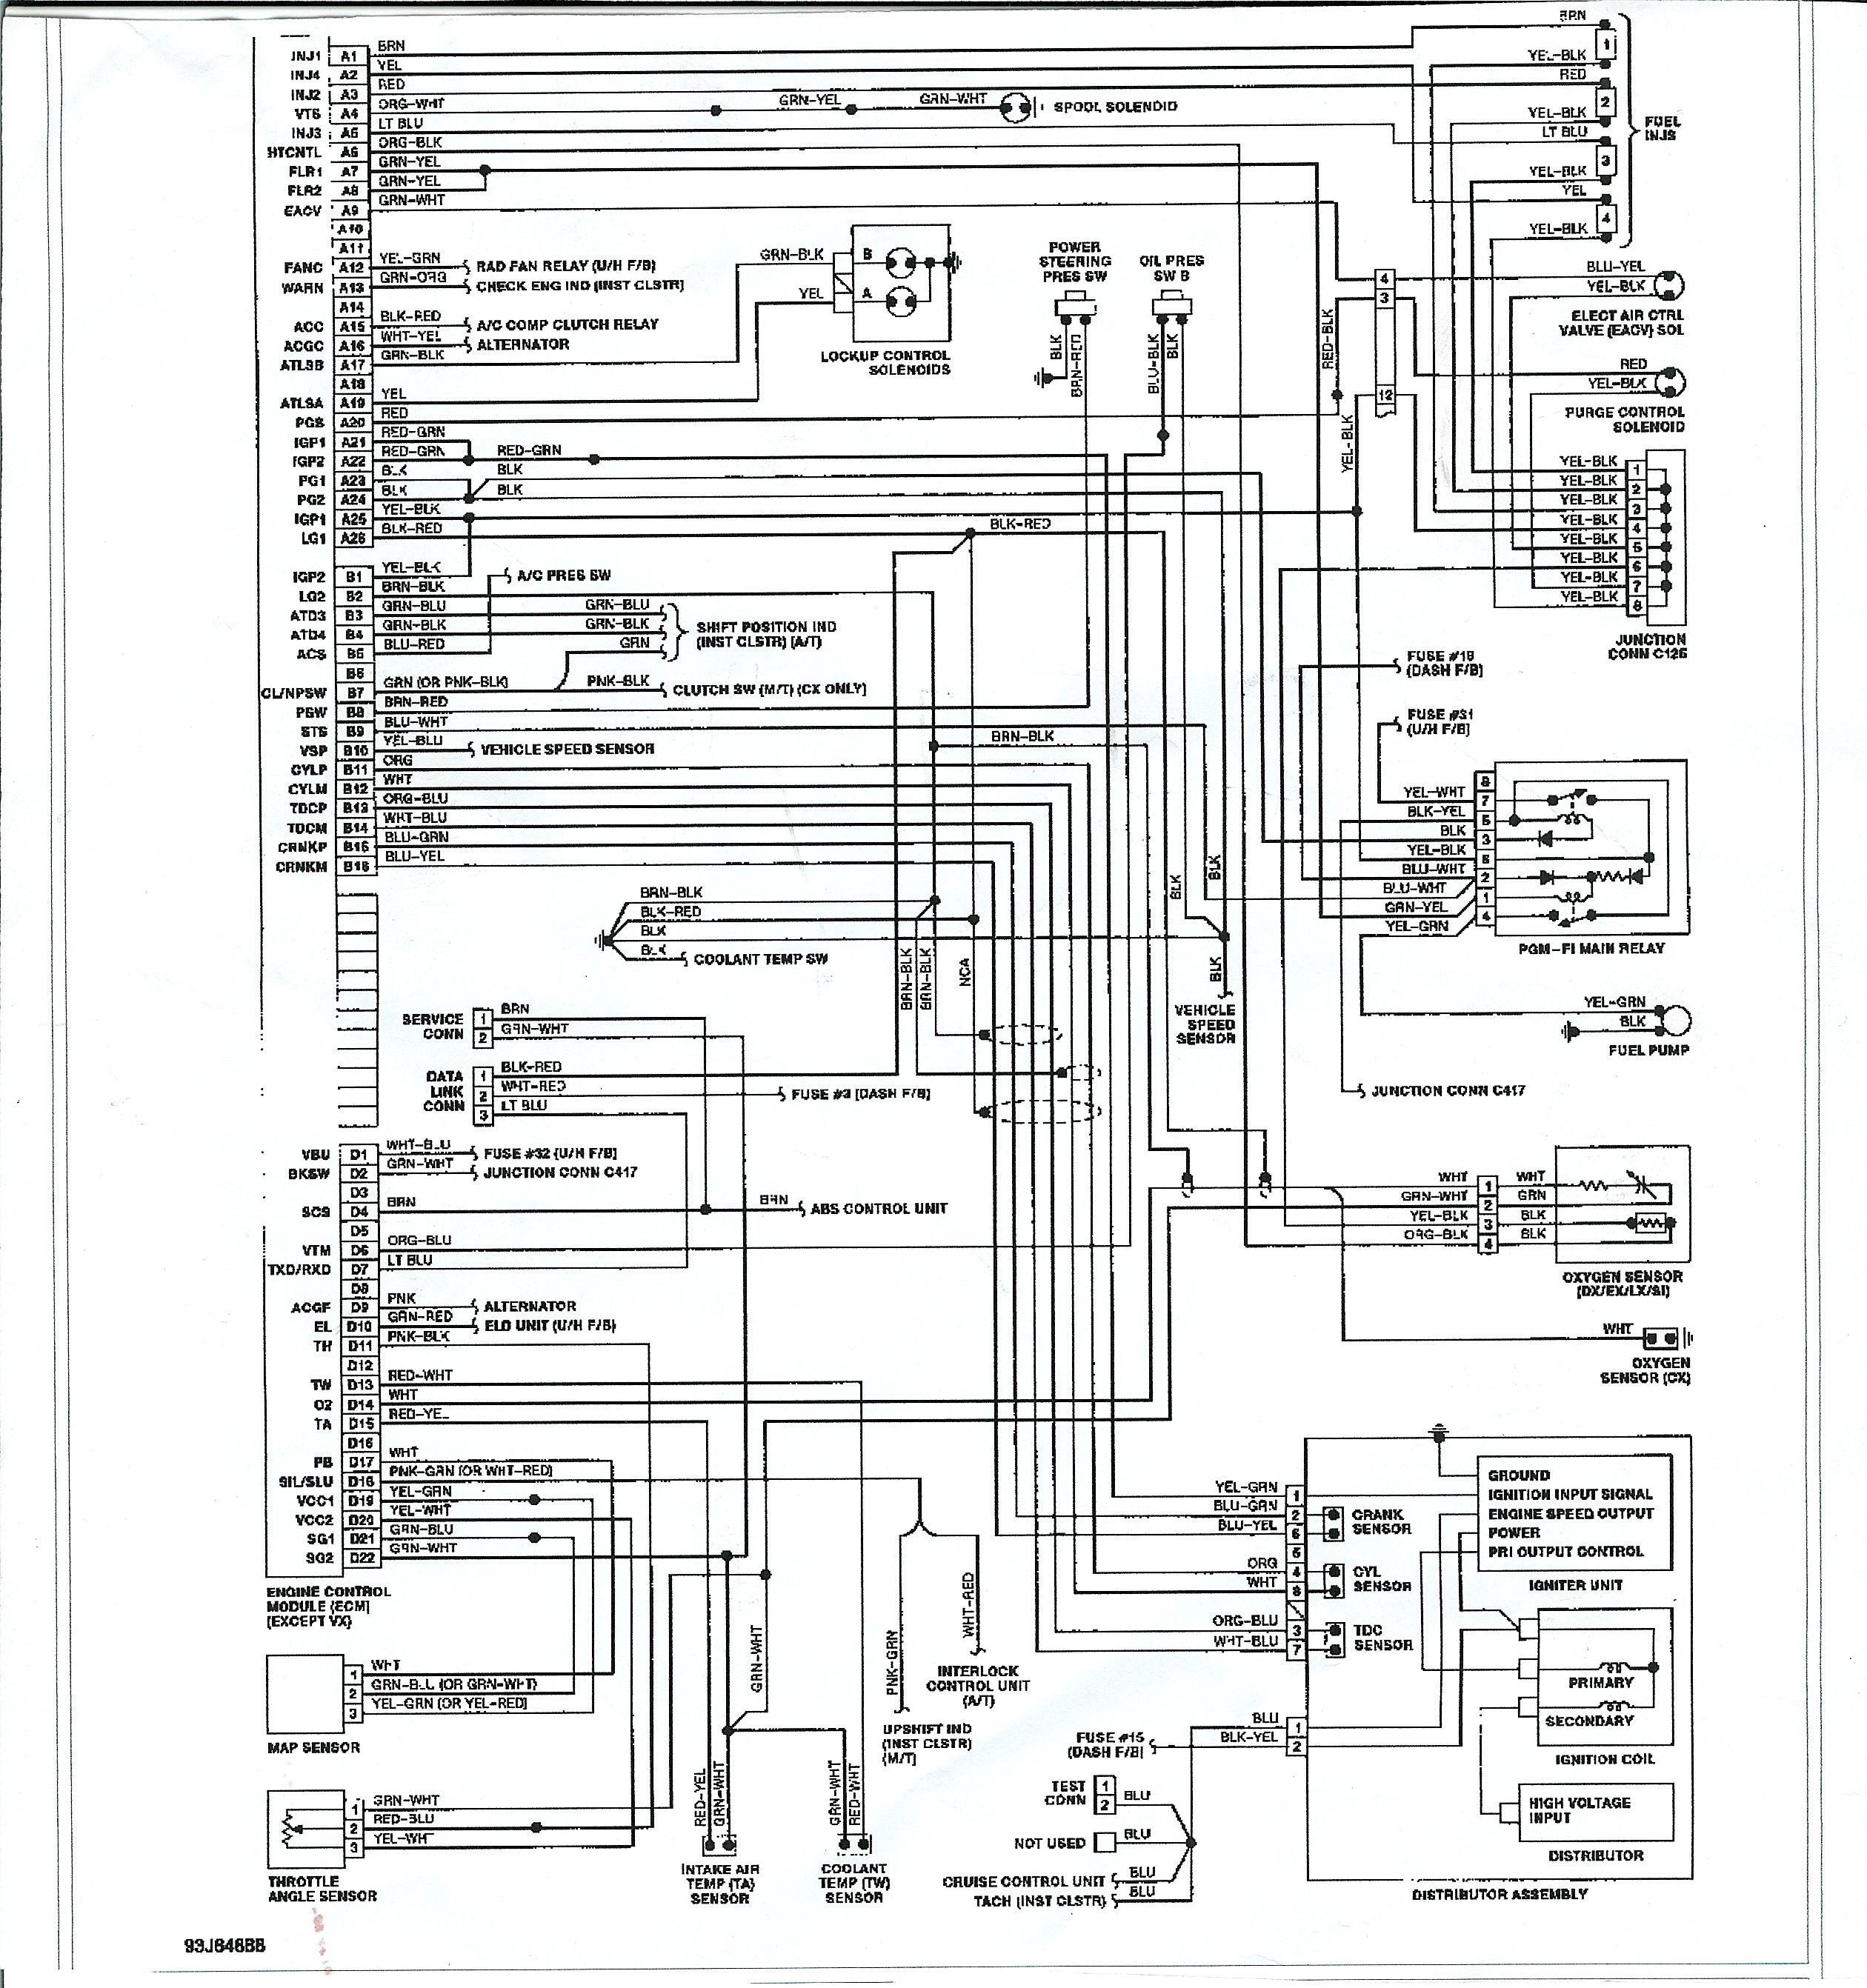 [SCHEMATICS_4NL]  2000 Honda Accord Engine Diagram Wiring Schematic - Hvac Drawing Autocad  for Wiring Diagram Schematics | 1996 Ford F750 Wiring Schematic |  | Wiring Diagram Schematics